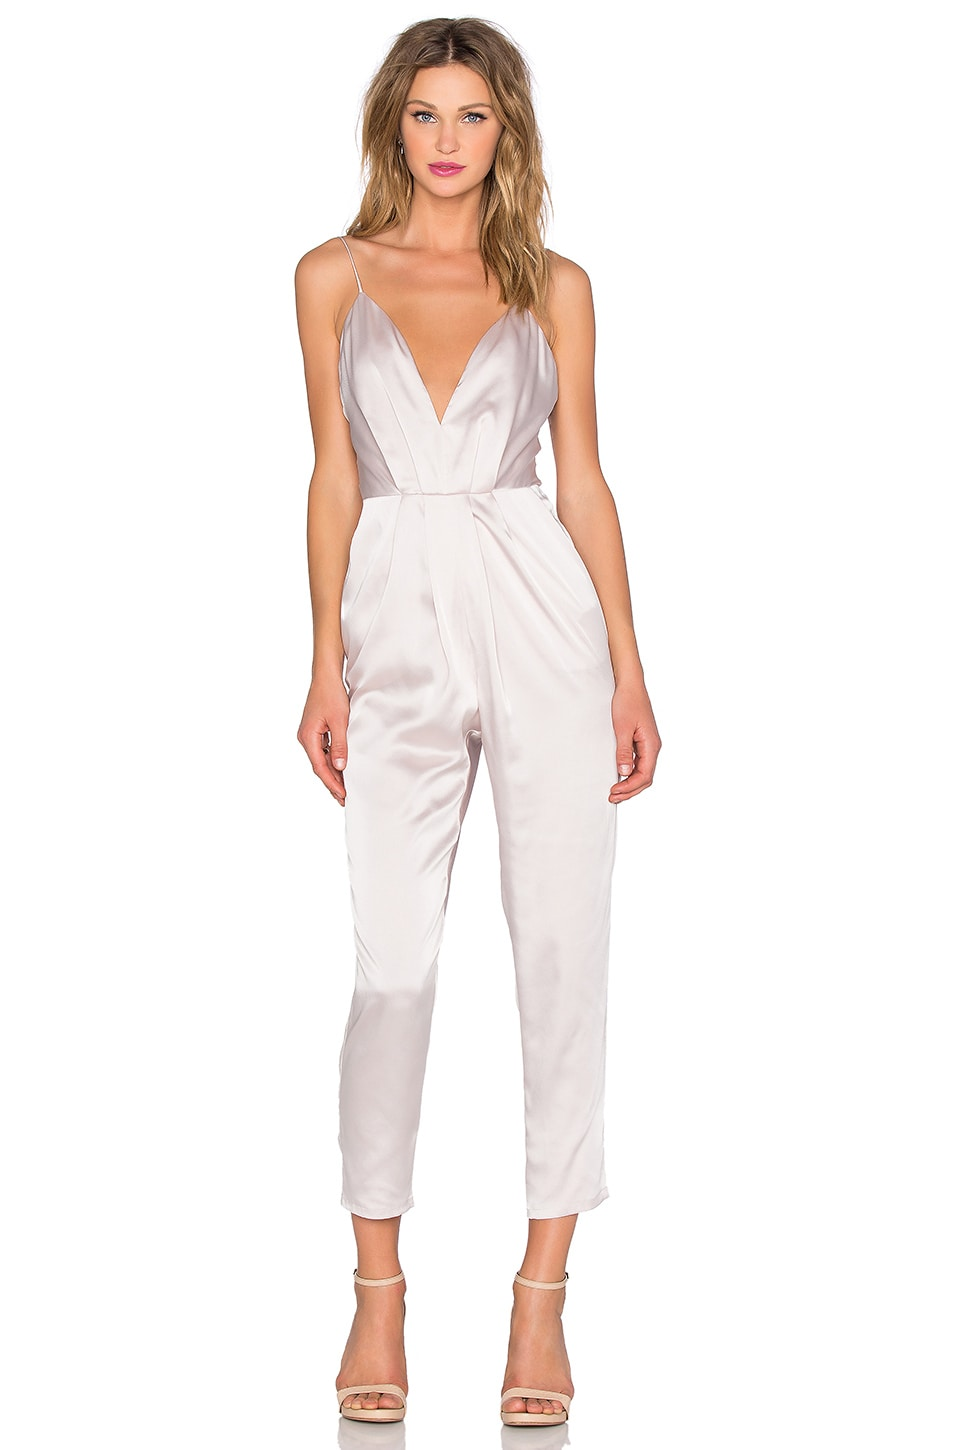 Lovers + Friends x REVOLVE My Way Jumpsuit in Champagne Pink